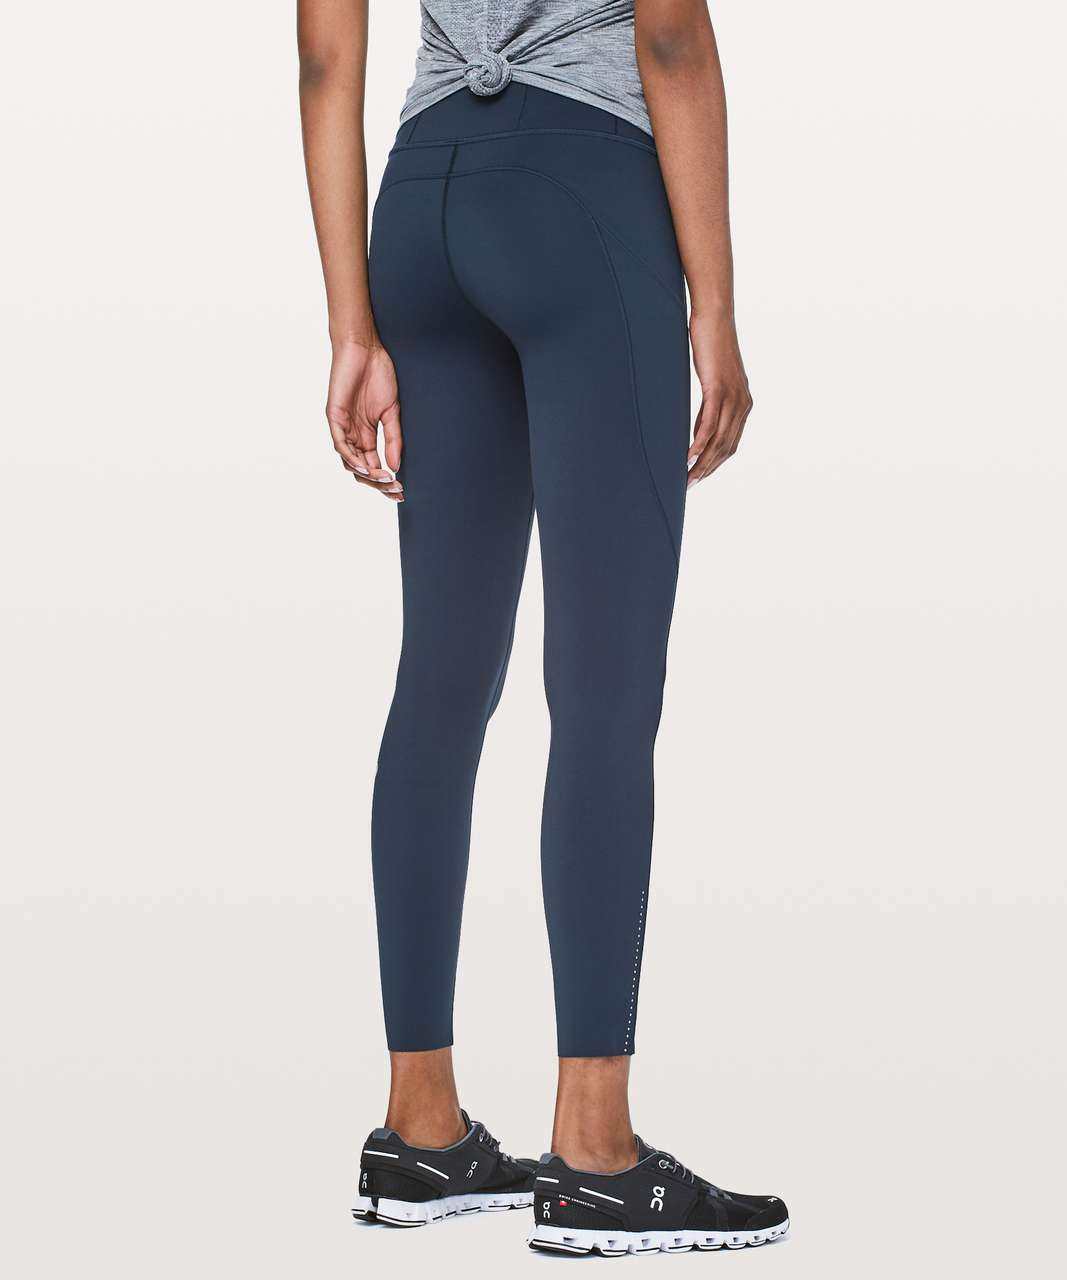 "Lululemon Fast & Free 7/8 Tight II *Nulux 25"" - True Navy"